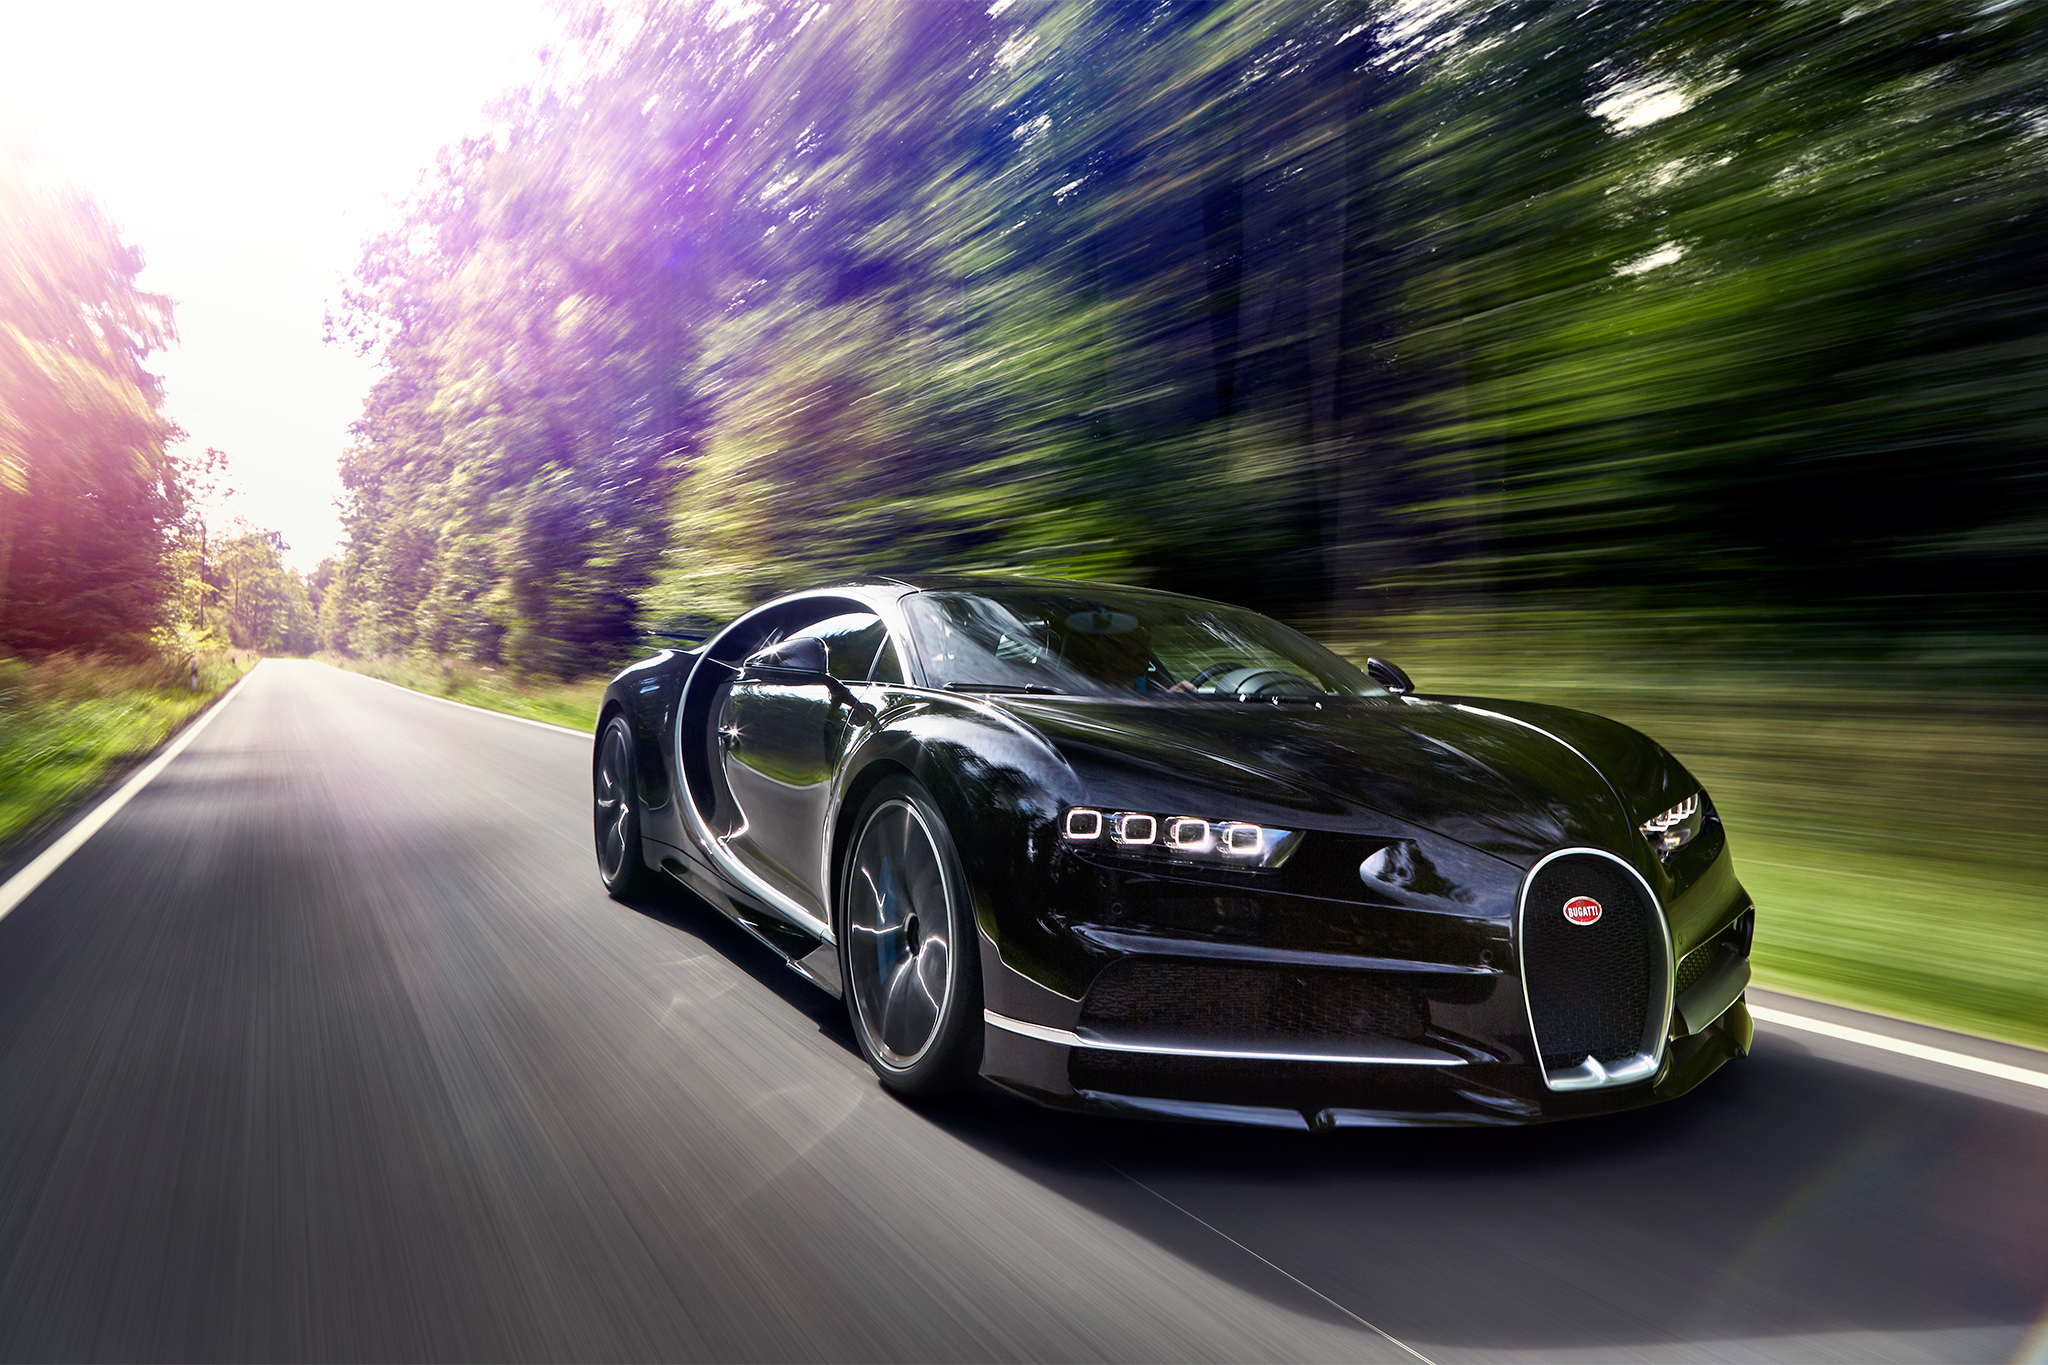 2017 Bugatti Chiron In Motion Hd Cars 4k Wallpapers Images Backgrounds Photos And Pictures